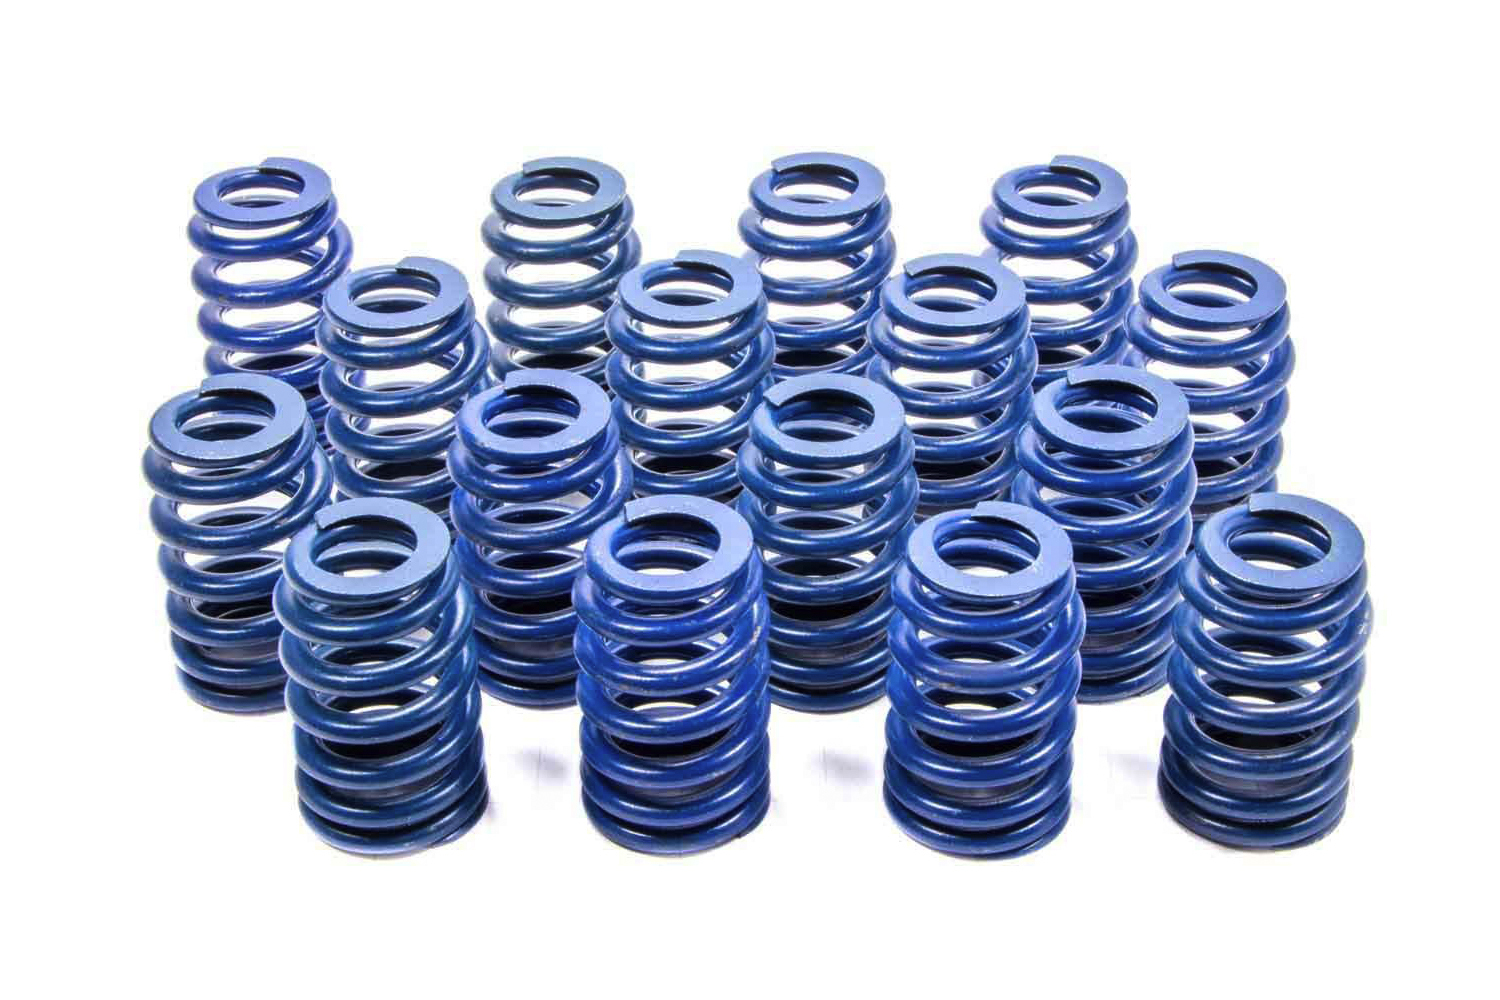 Chevrolet Performance 19420455 Valve Spring, Single Beehive Spring, 332 lb/in Spring Rate, 1.220 in Coil Bind, 1.320 in OD, GM LS-Series, Set of 16